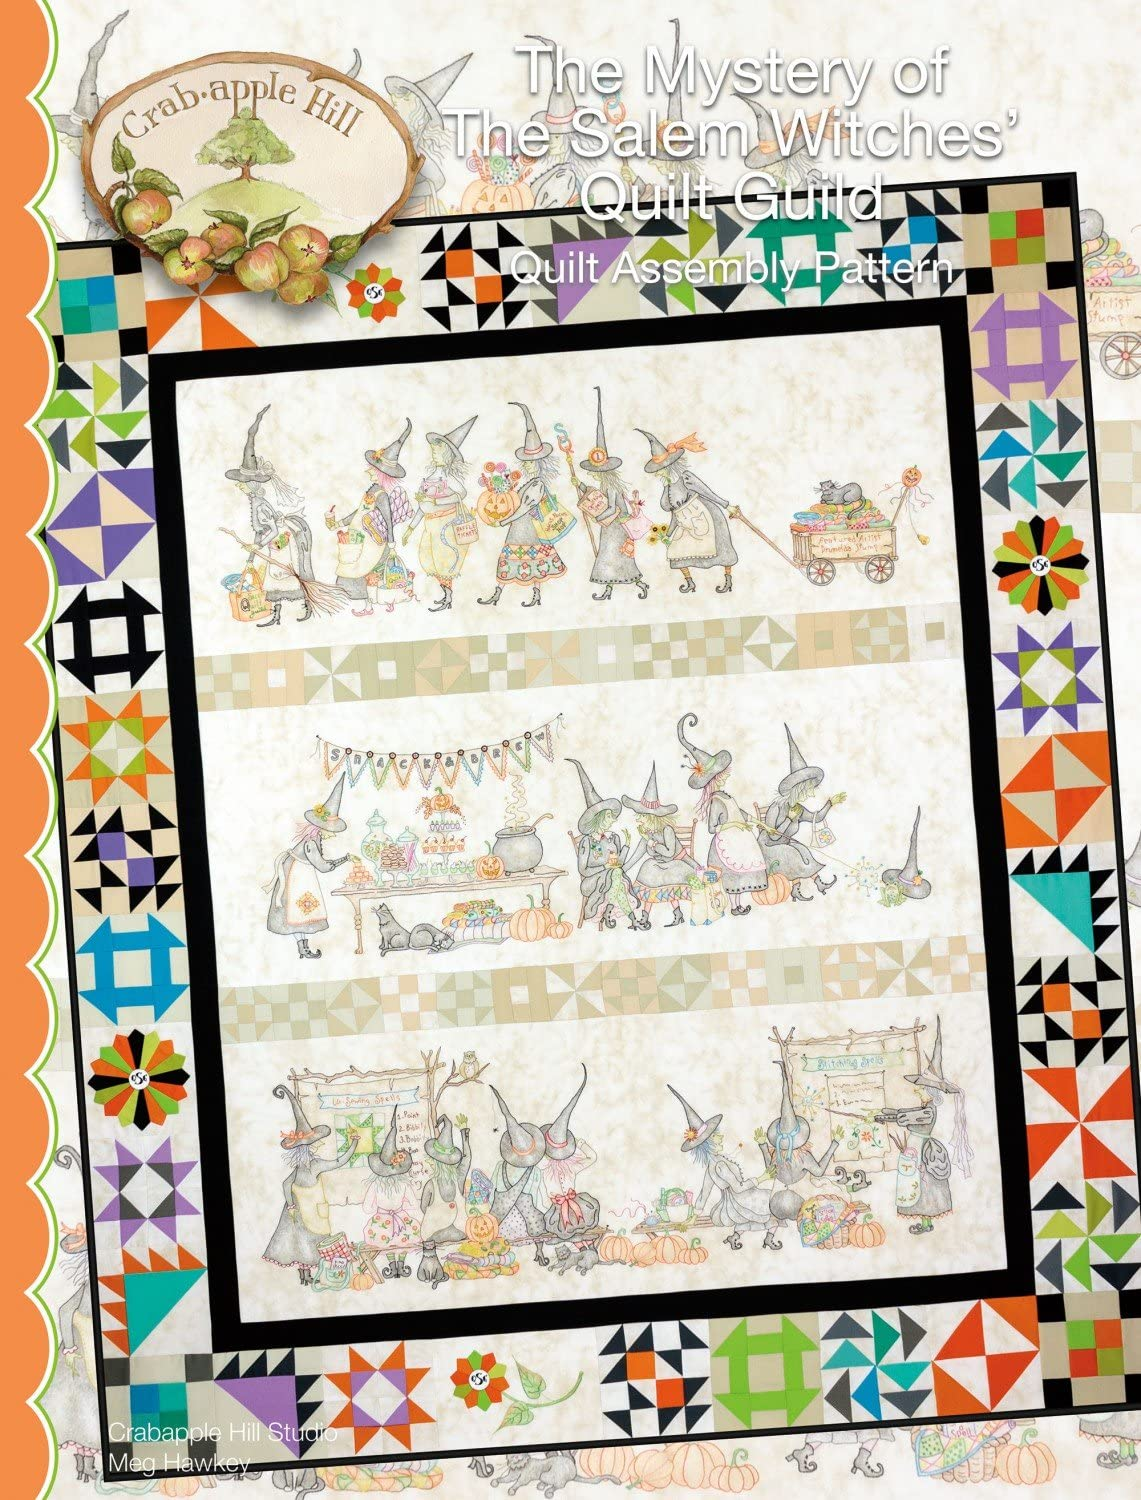 The Mystery of The Salem Witches Quilt Guild